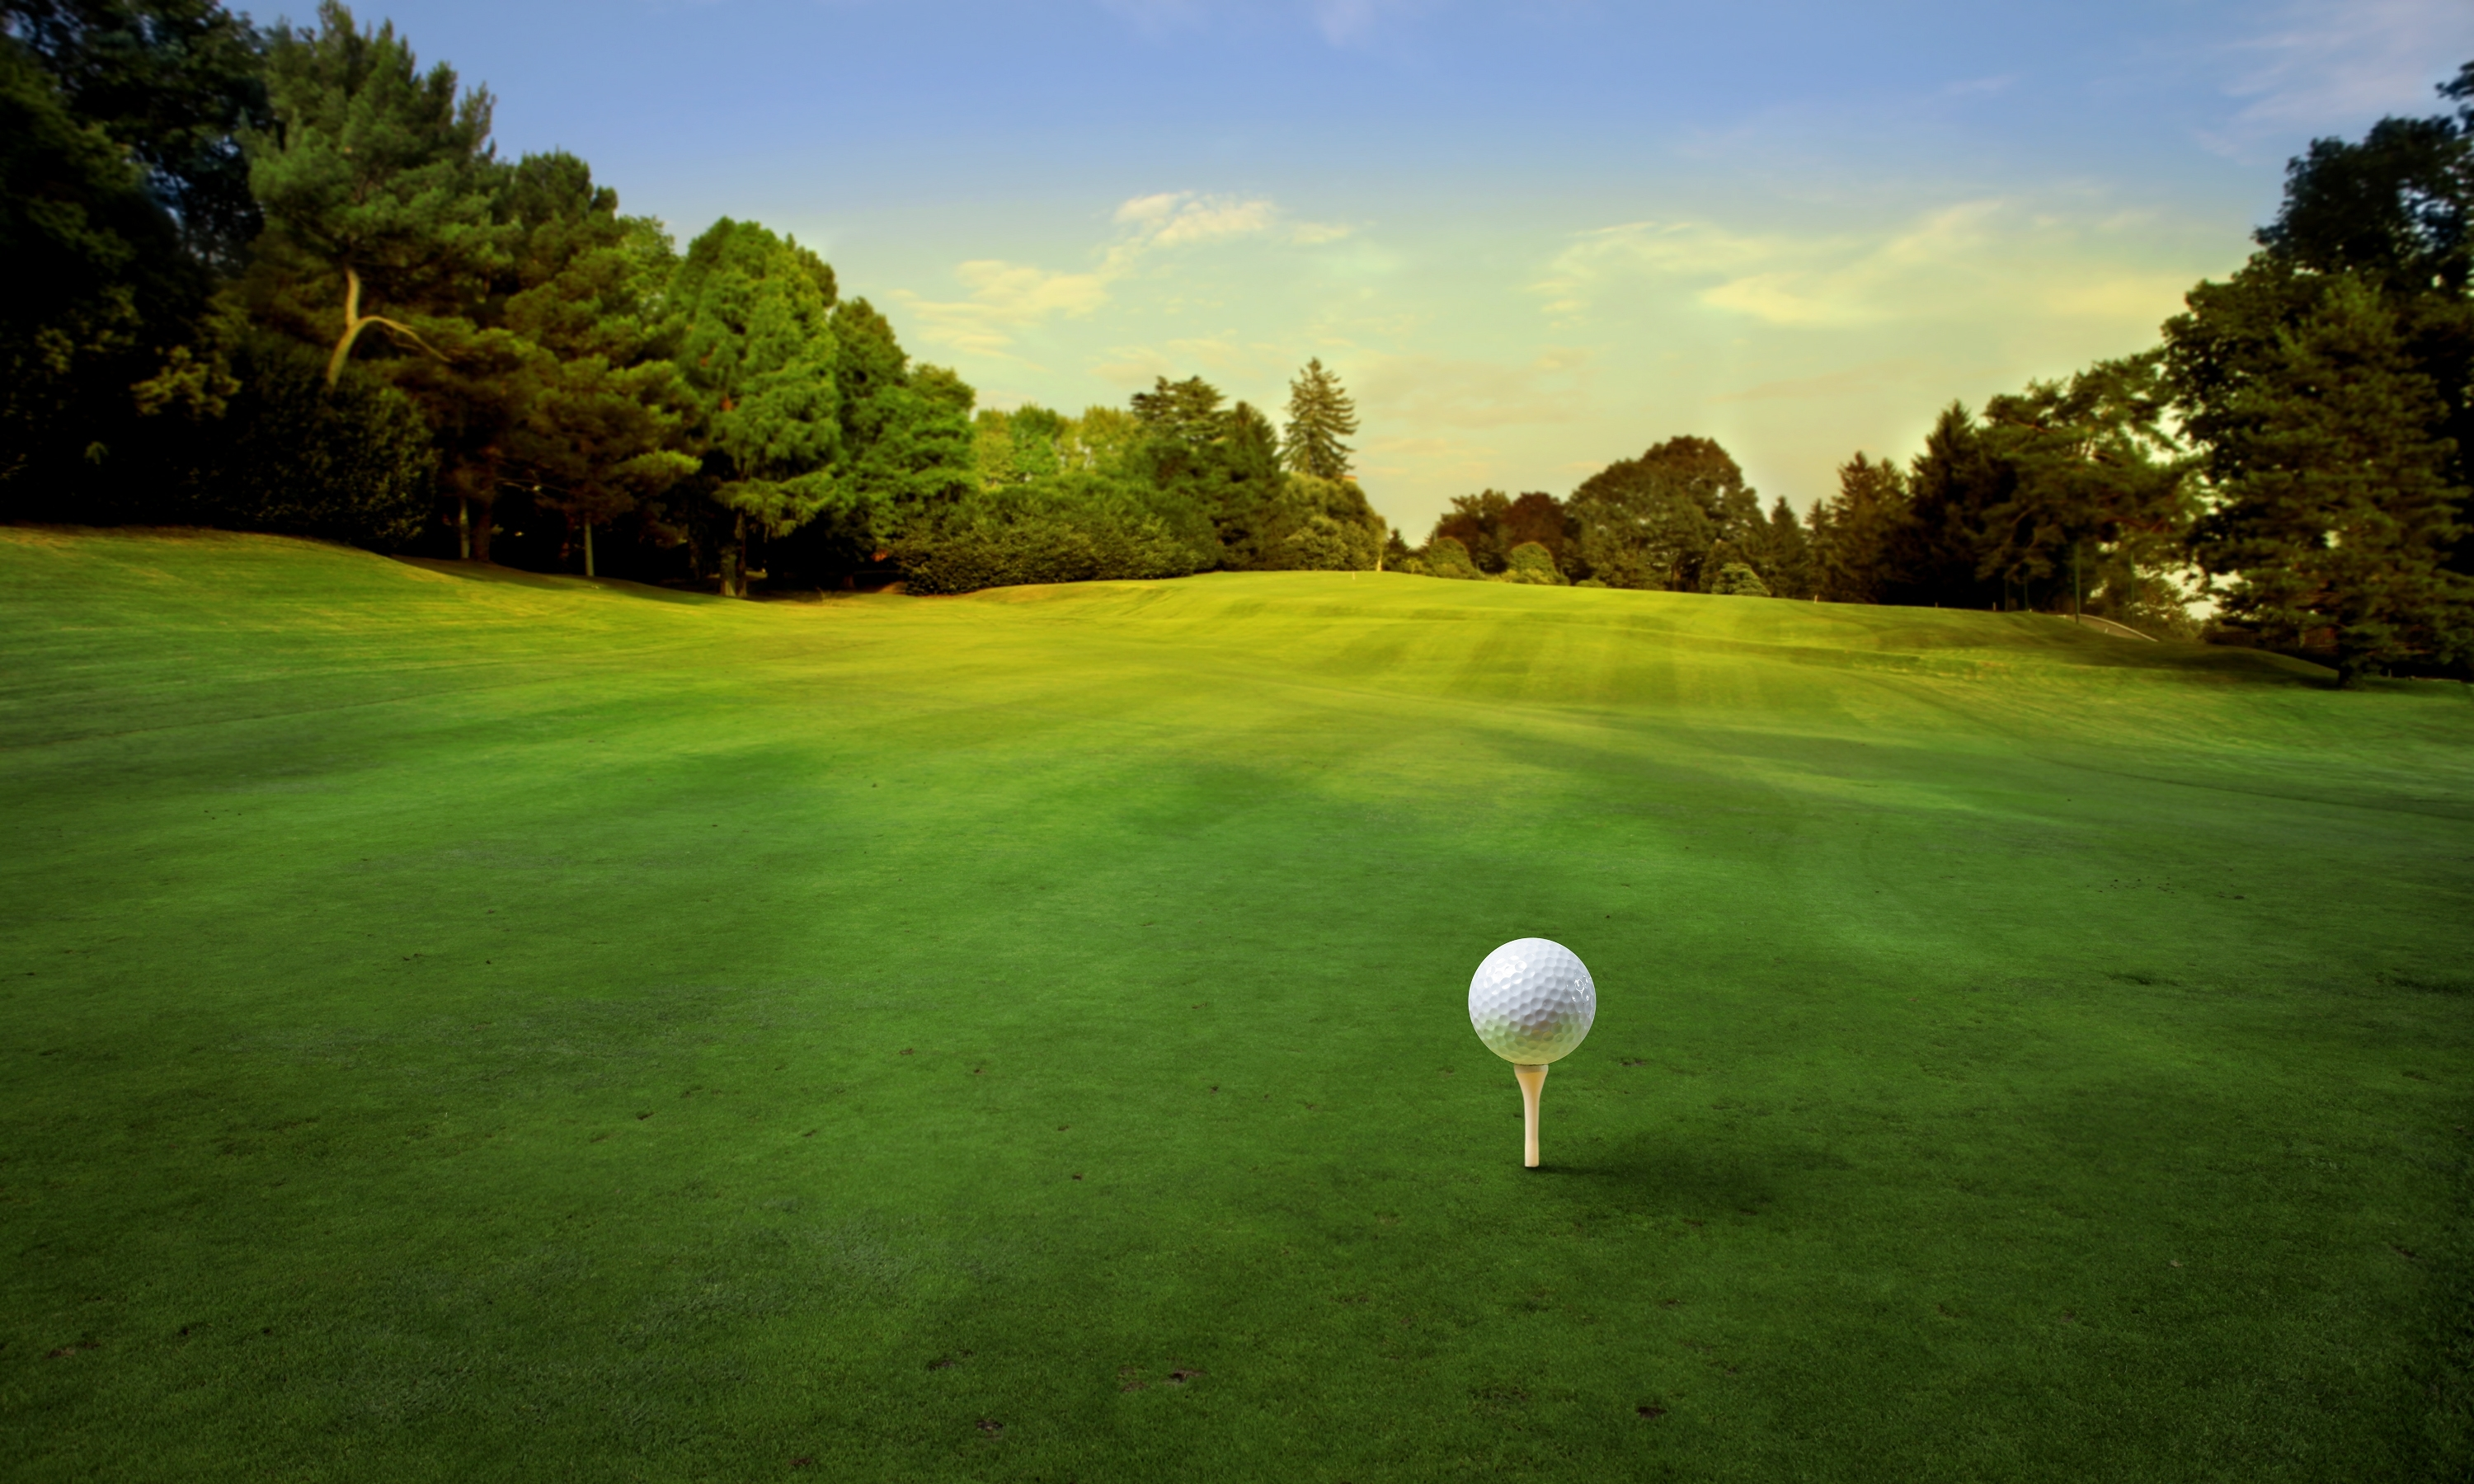 10 Latest Golf Course Background Images FULL HD 1080p For ...